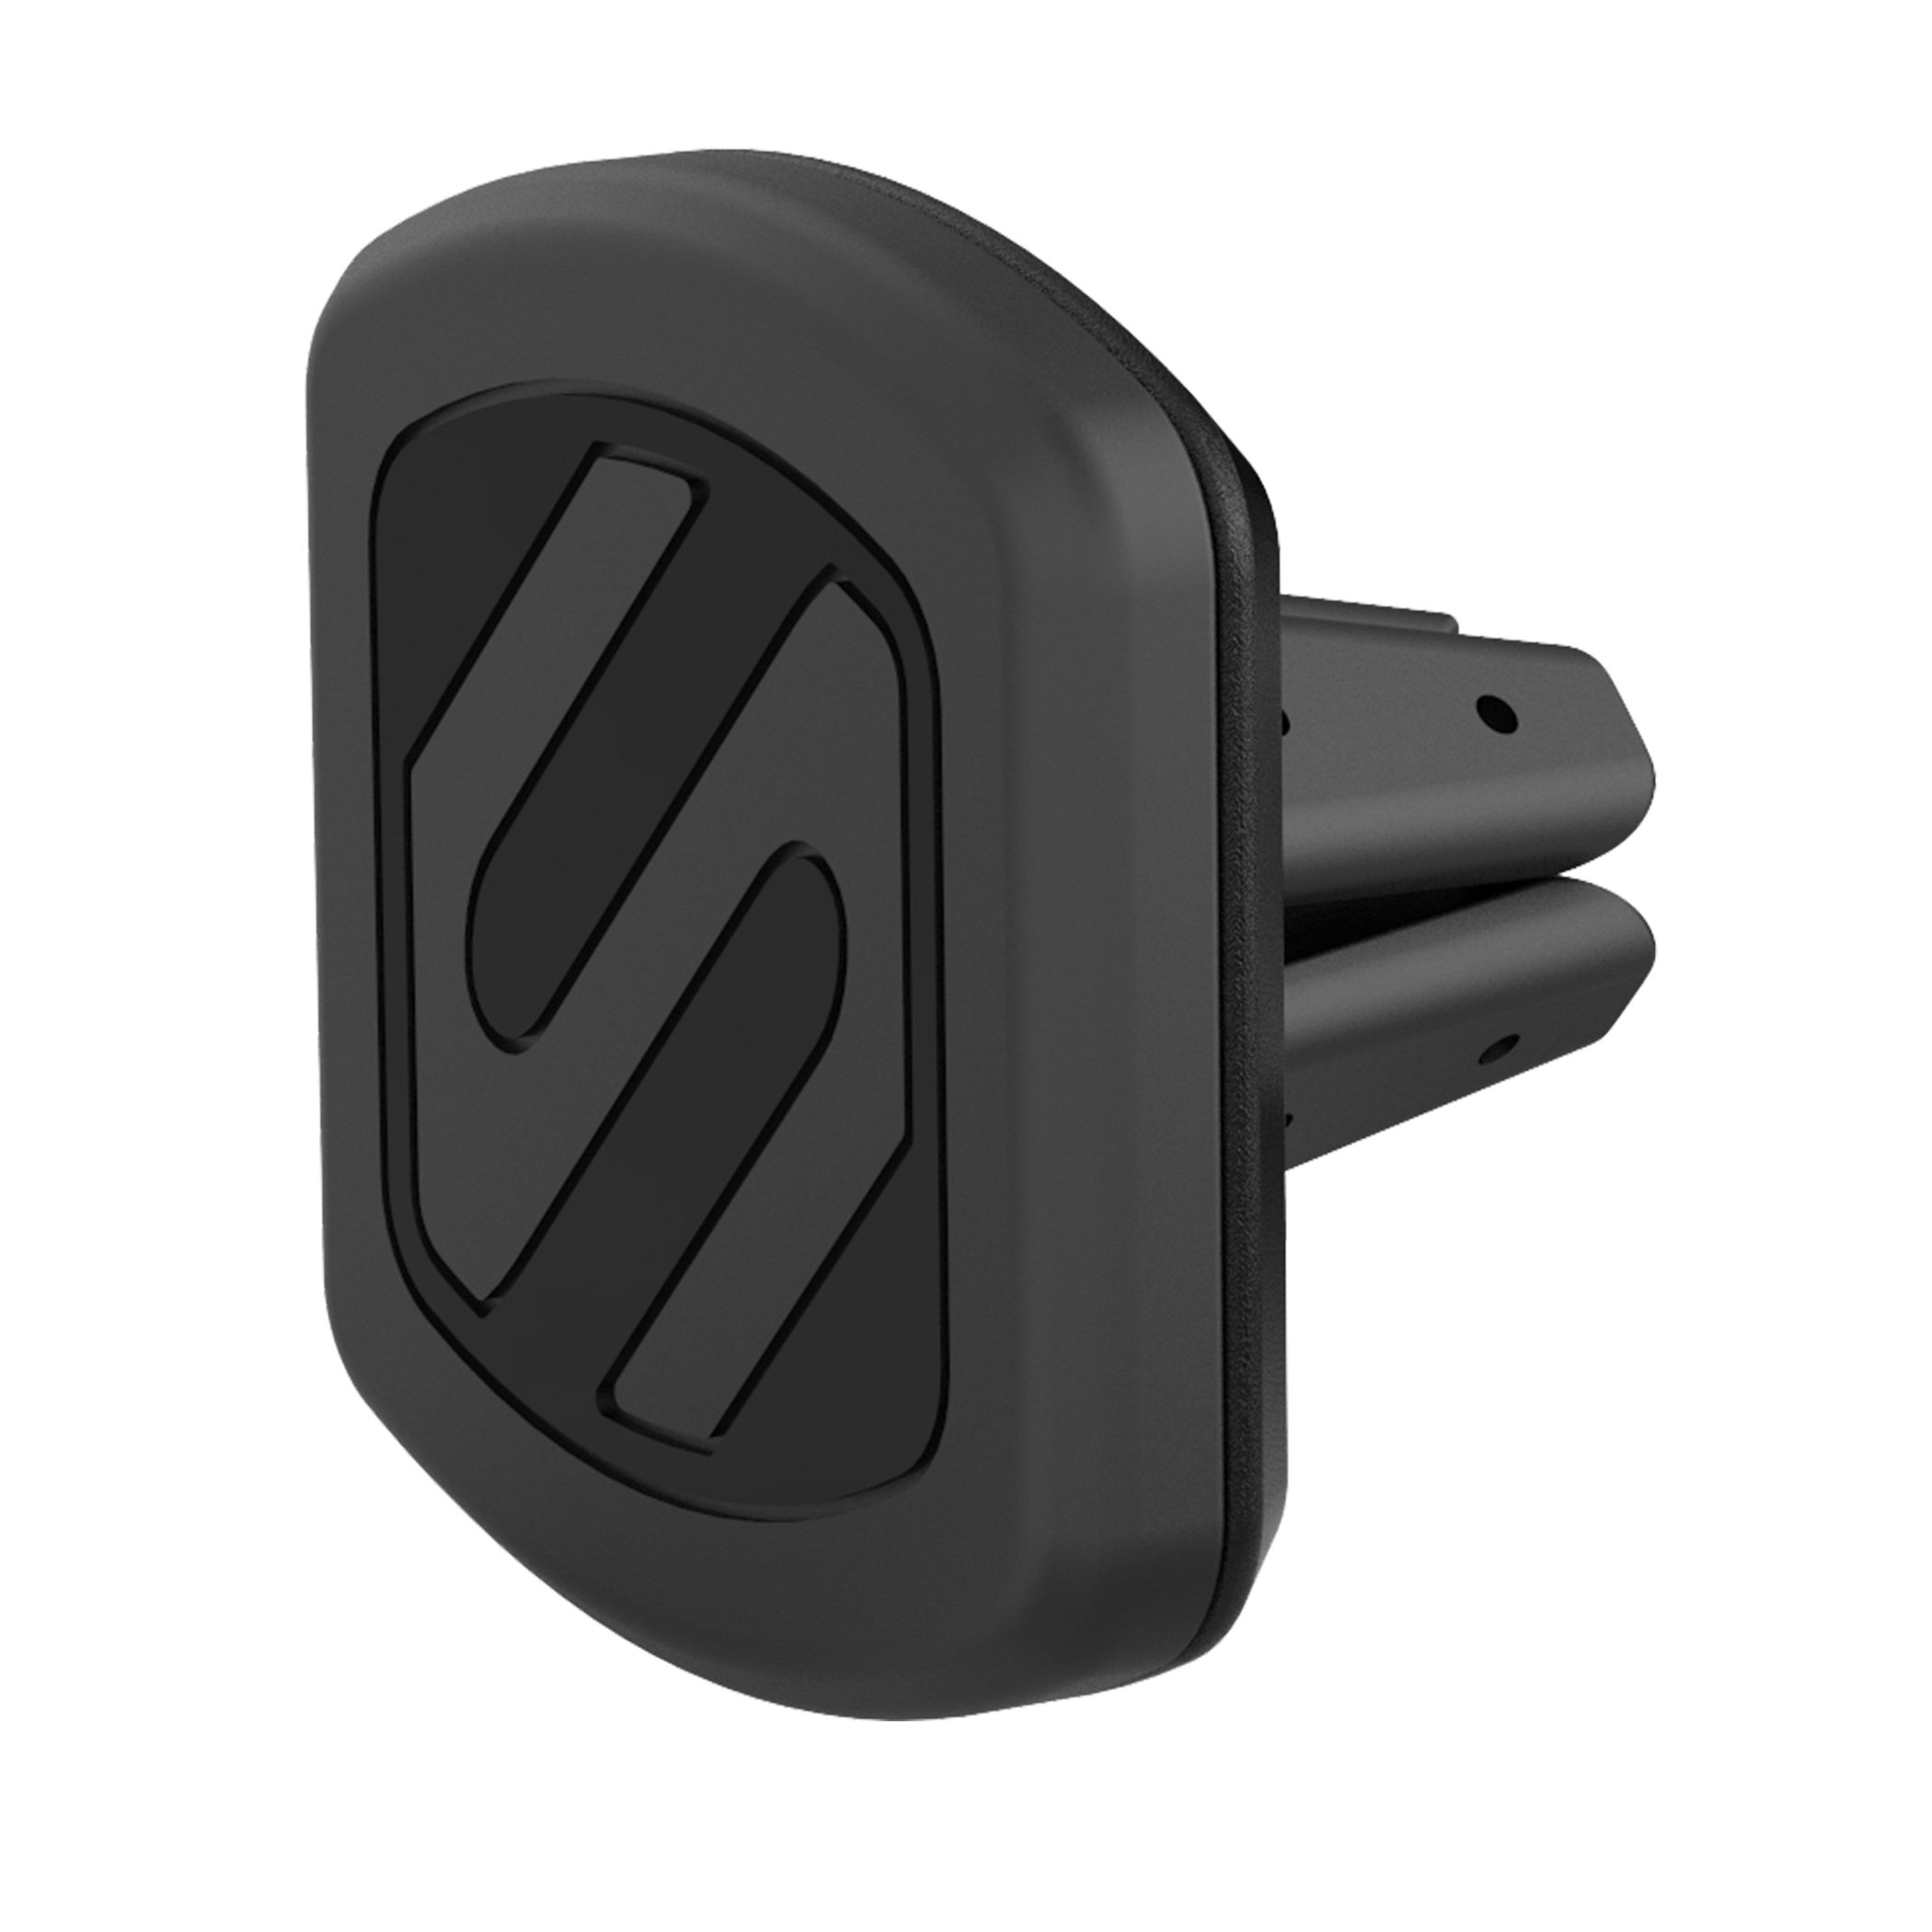 SCOSCHE MAGVM2 MagicMount Magnetic Phone/GPS Vent Mount for the Car